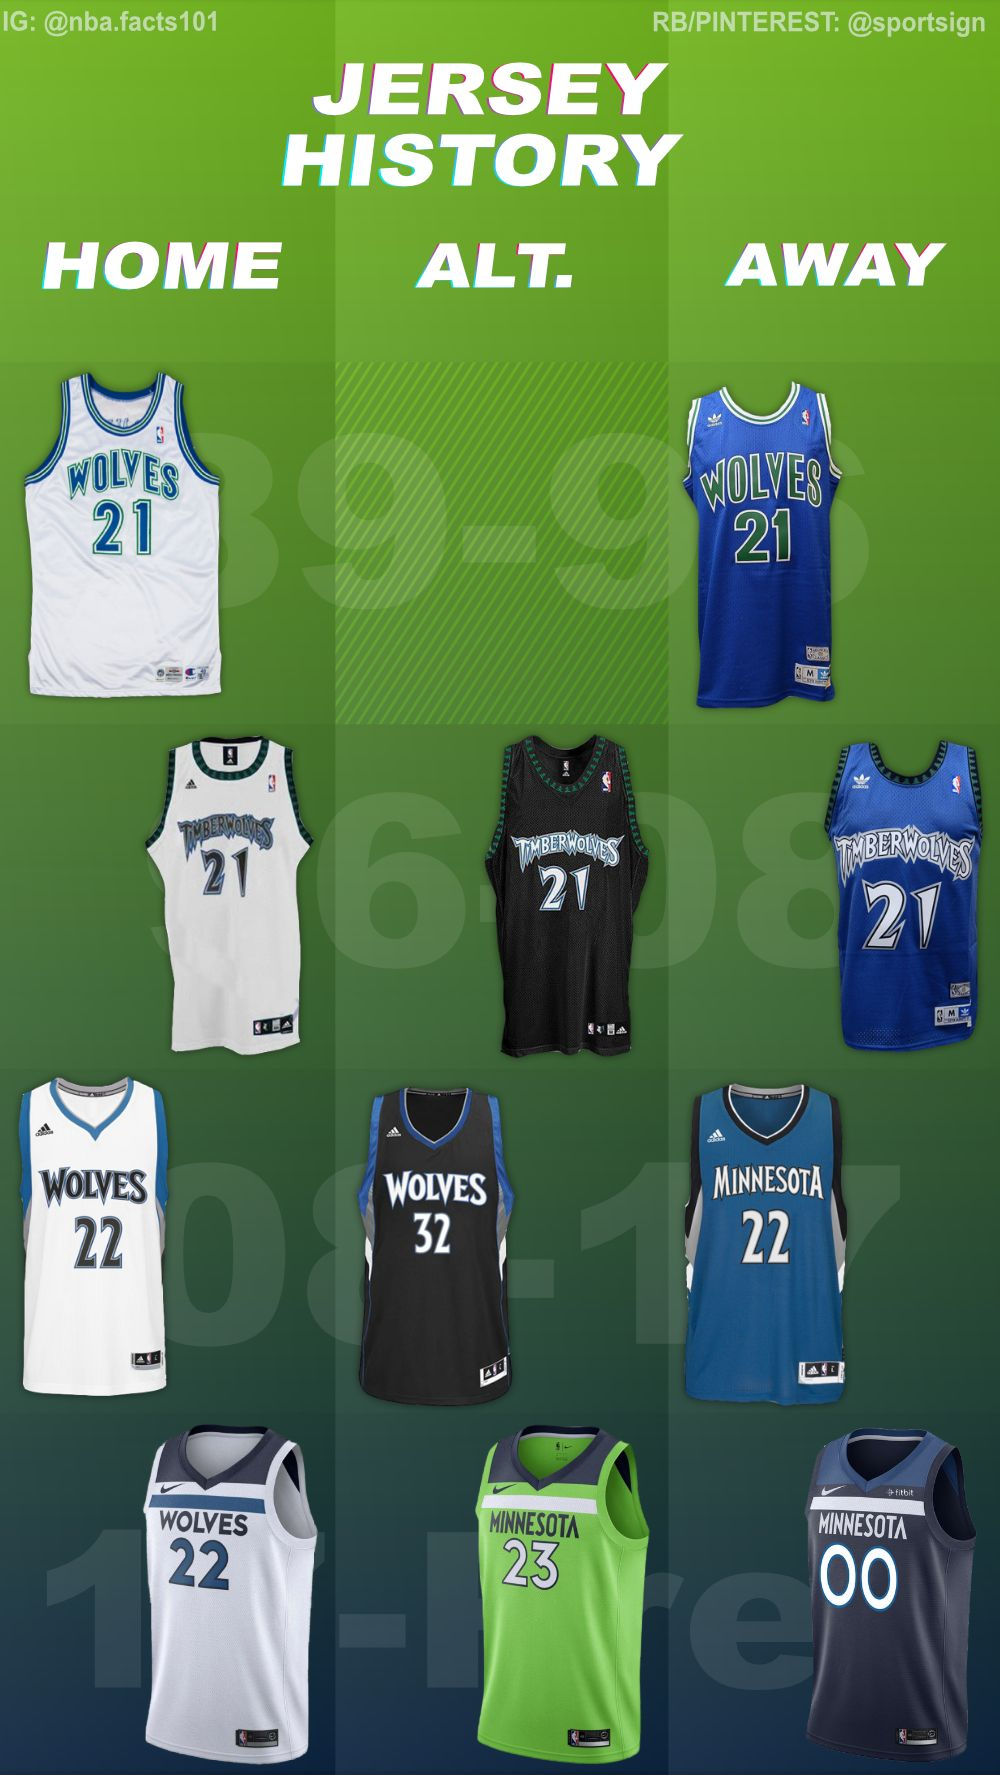 Minnesota Timberwolves Jersey History Nba Nba Basketball Teams Minnesota Timberwolves